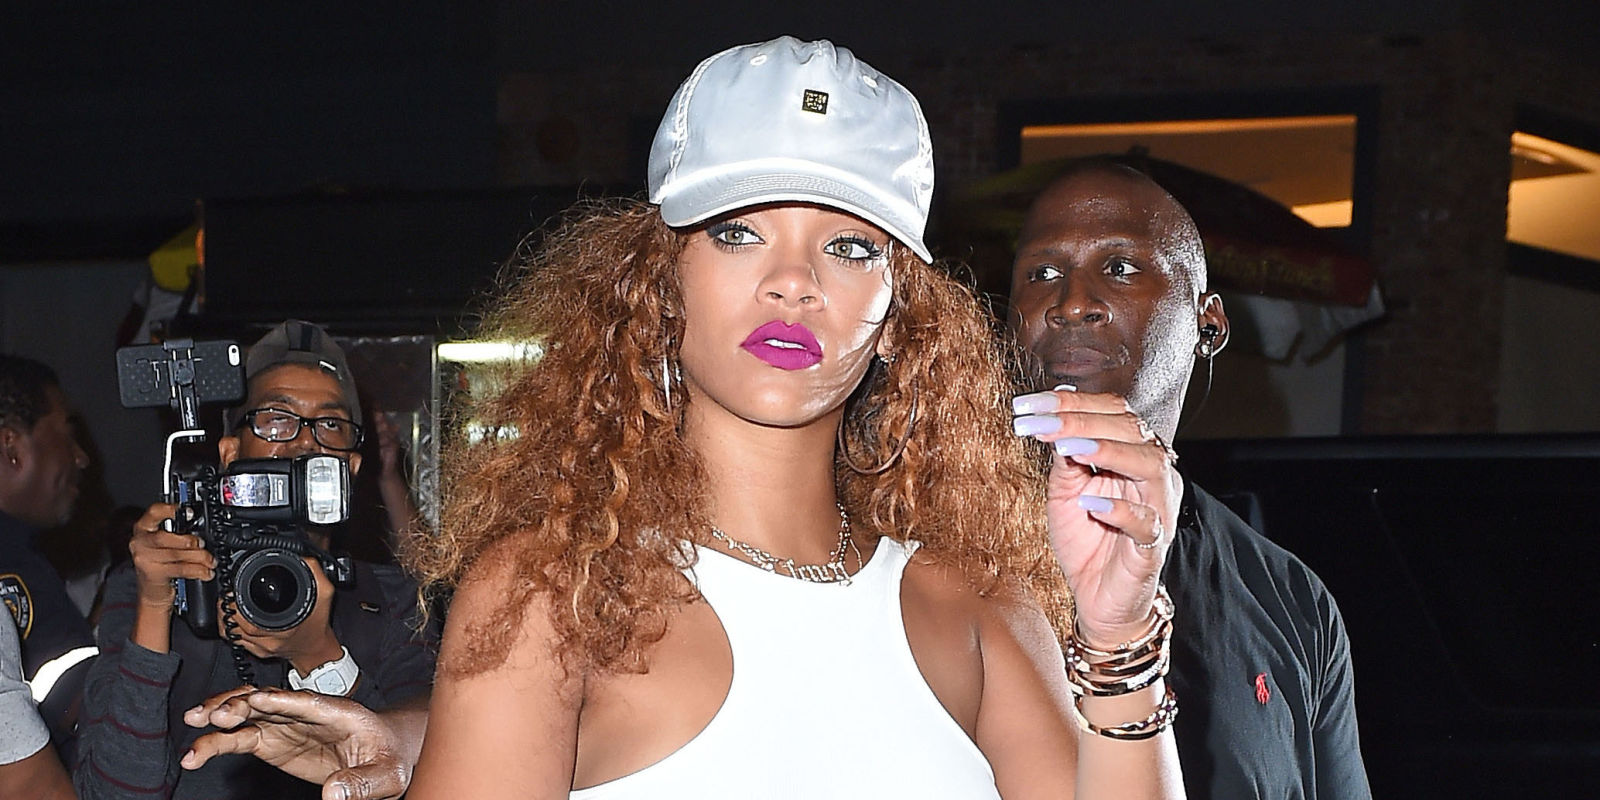 who do rihanna dating now Rihanna and hassan jameel have been  rihanna and her billionaire boyfriend hassan jameel are  paris jackson clarifies her dating status with cara.